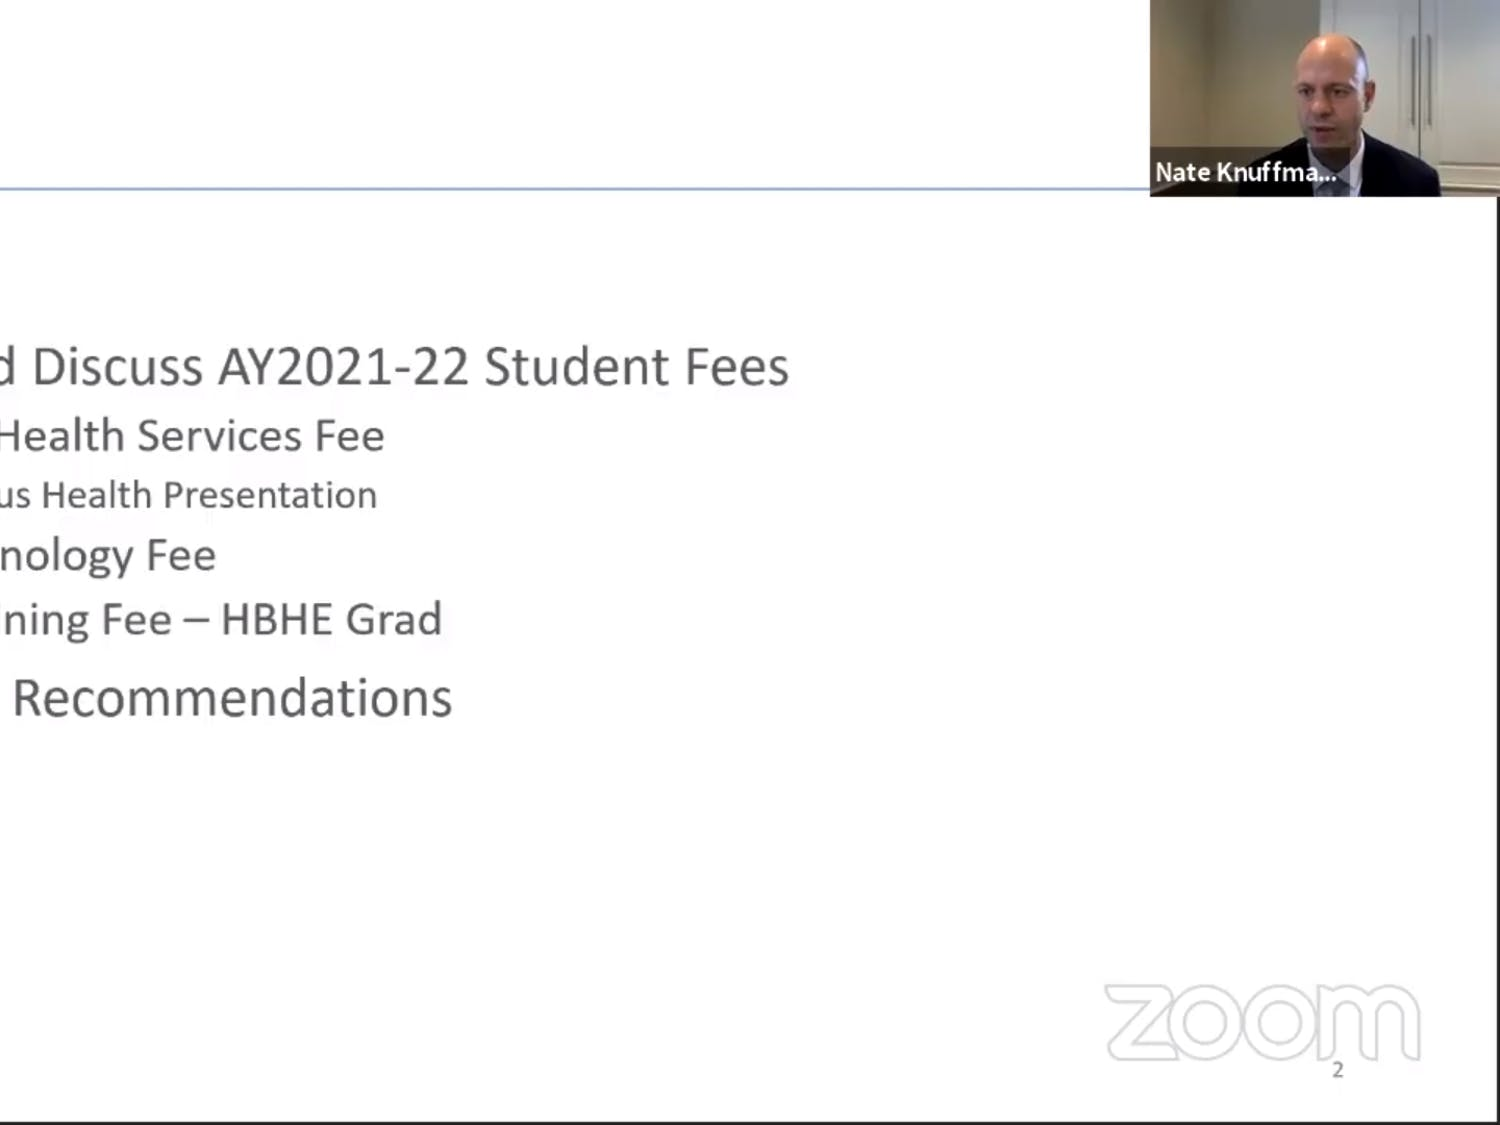 UNC's Student Fee Advisory Subcommittee meets on Oct. 22 to discuss increasing the yearly Campus Health student fee and the renaming of other fees.